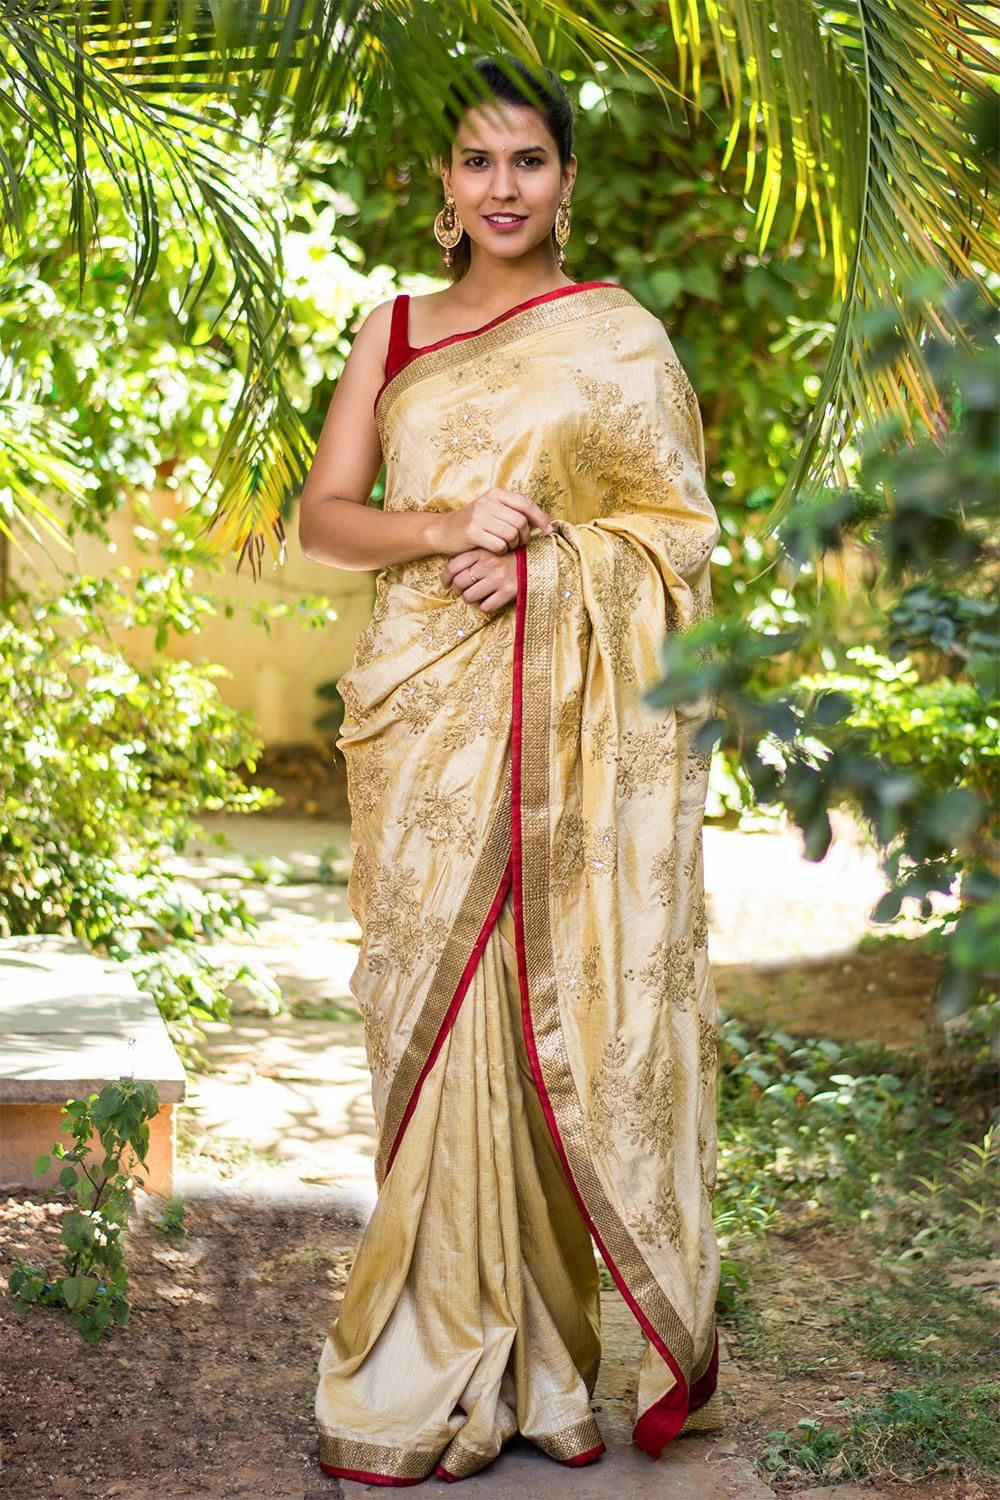 Half and half cream semi raw silk saree with zari embroidery + antique gold sequin and deep red reverse border #saree #houseofblouse #rawsilk #beige #gold #red #embroidery #sequin #reverseborder